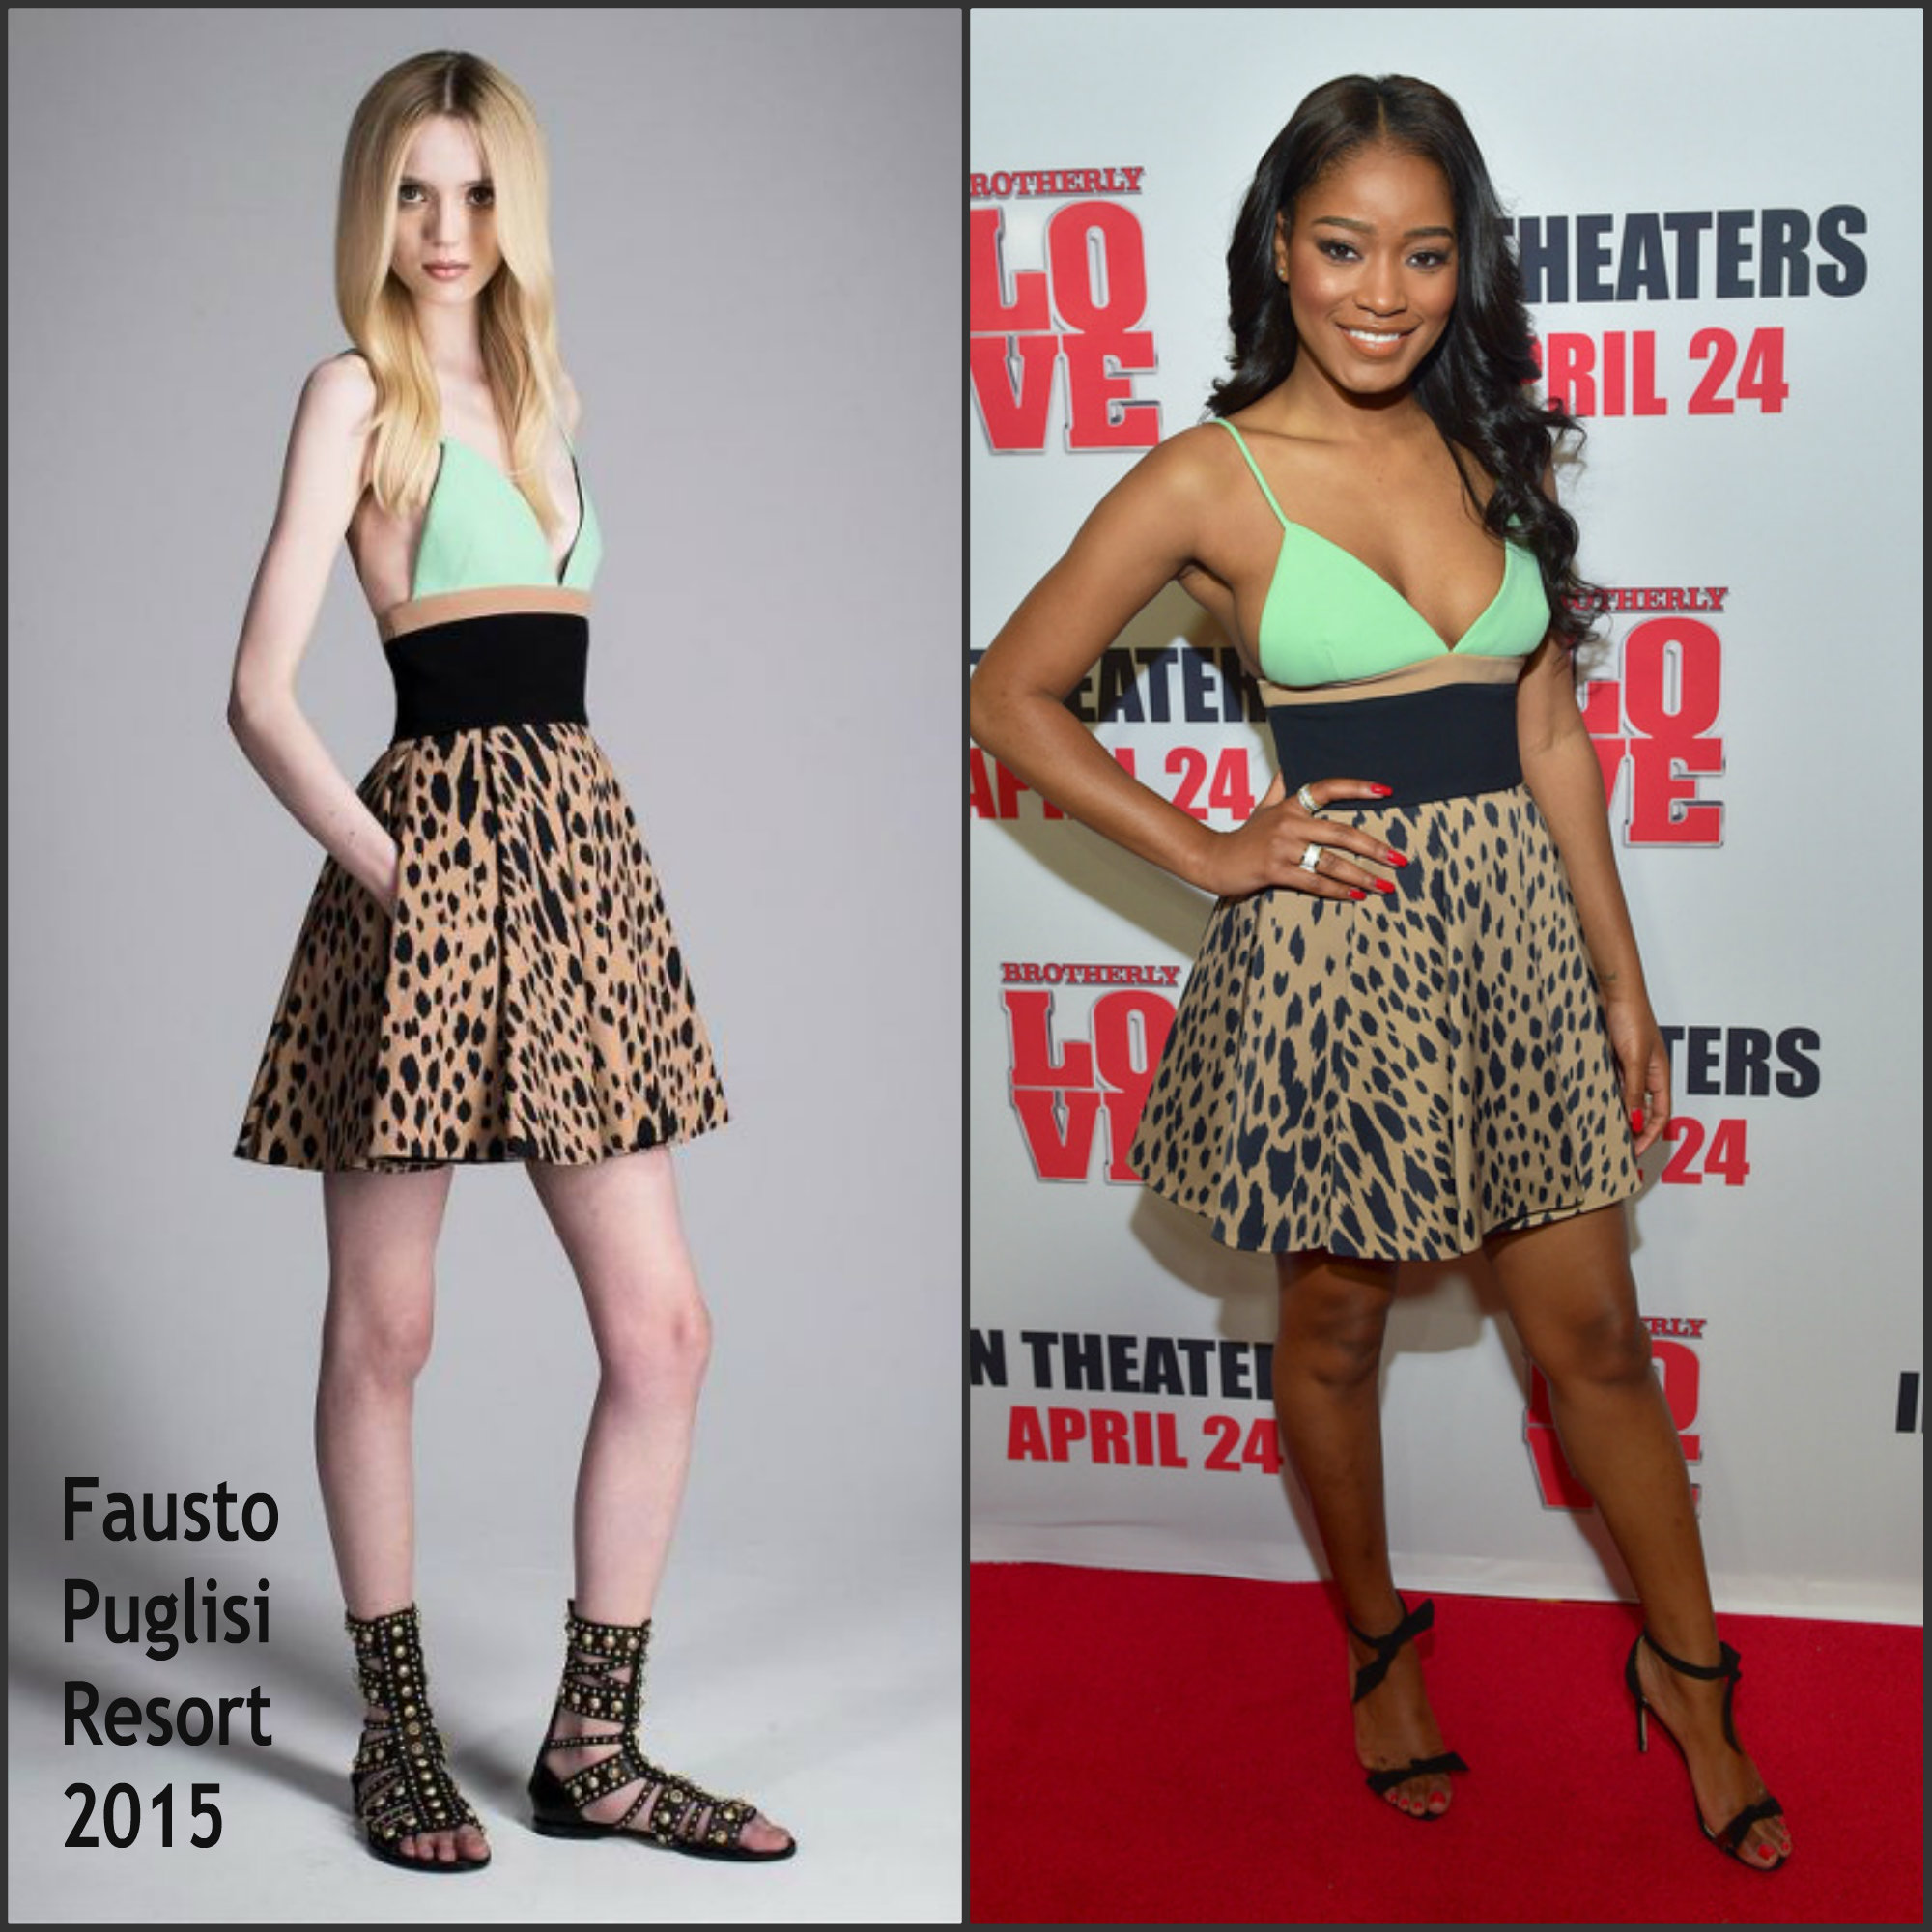 Keke-Palmer-in-Fausto-Puglisi-Brotherly-Love